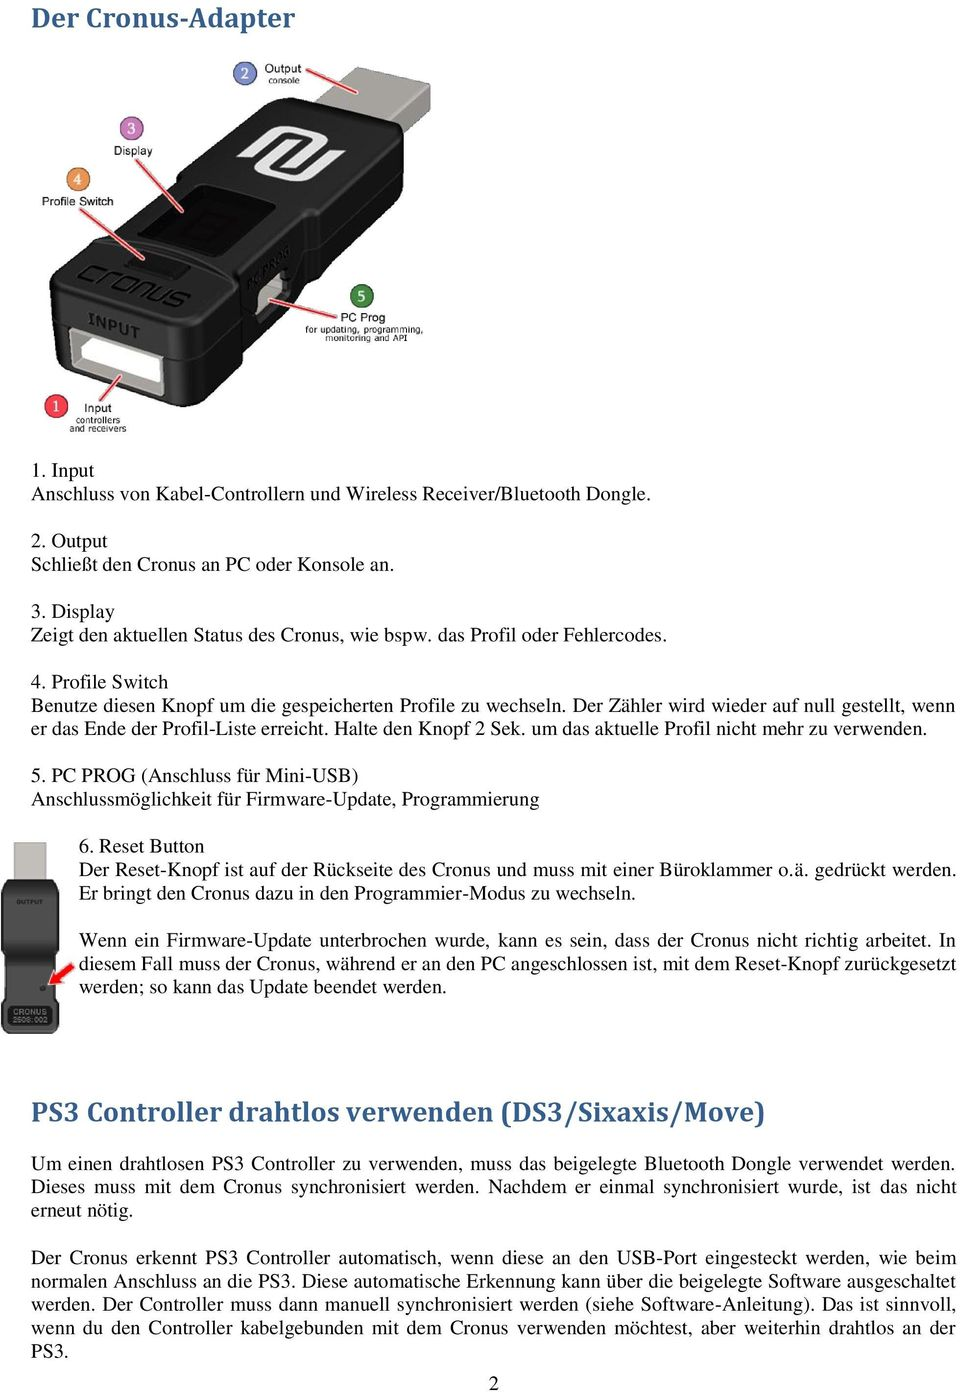 PS3 Controller drahtlos verwenden (DS3/Sixaxis/Move) - PDF